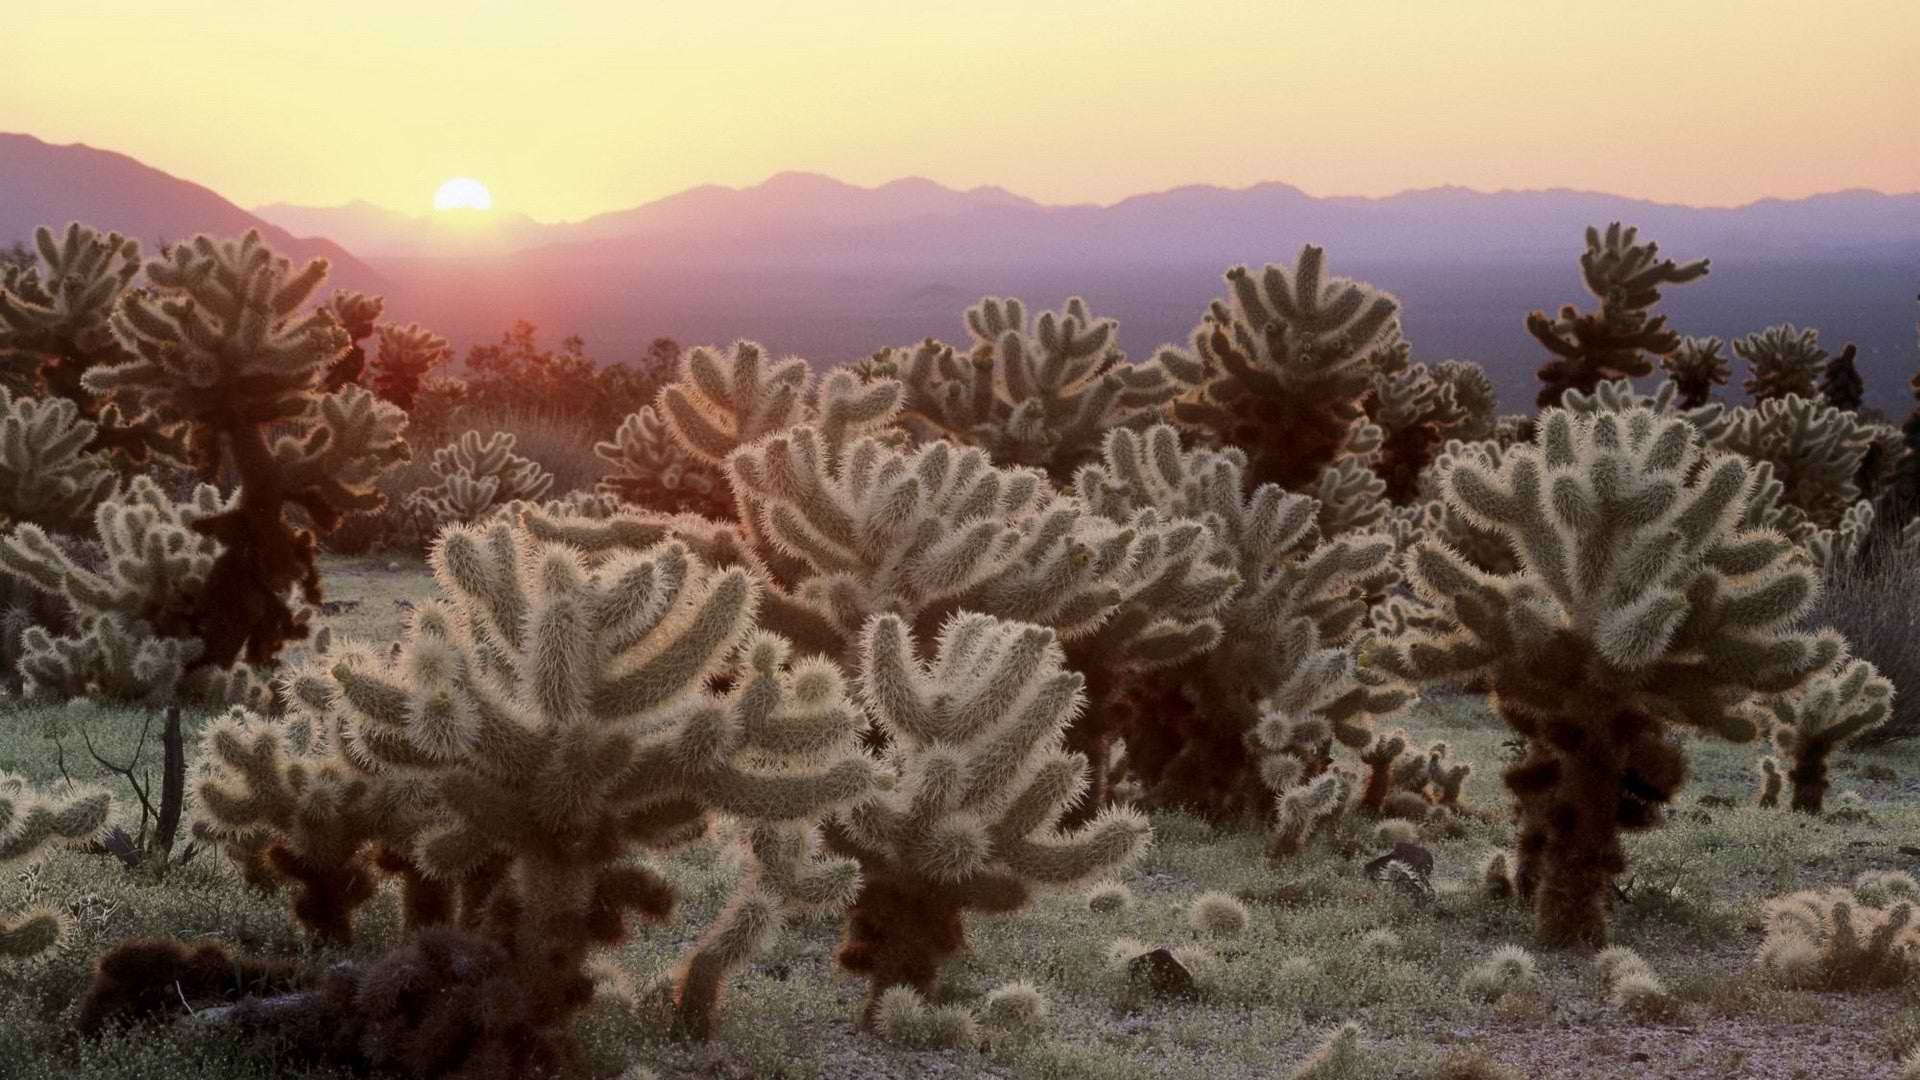 world-california-cactus-national-park-joshua-tree-national-park-1920x1080-hd-wallpaper